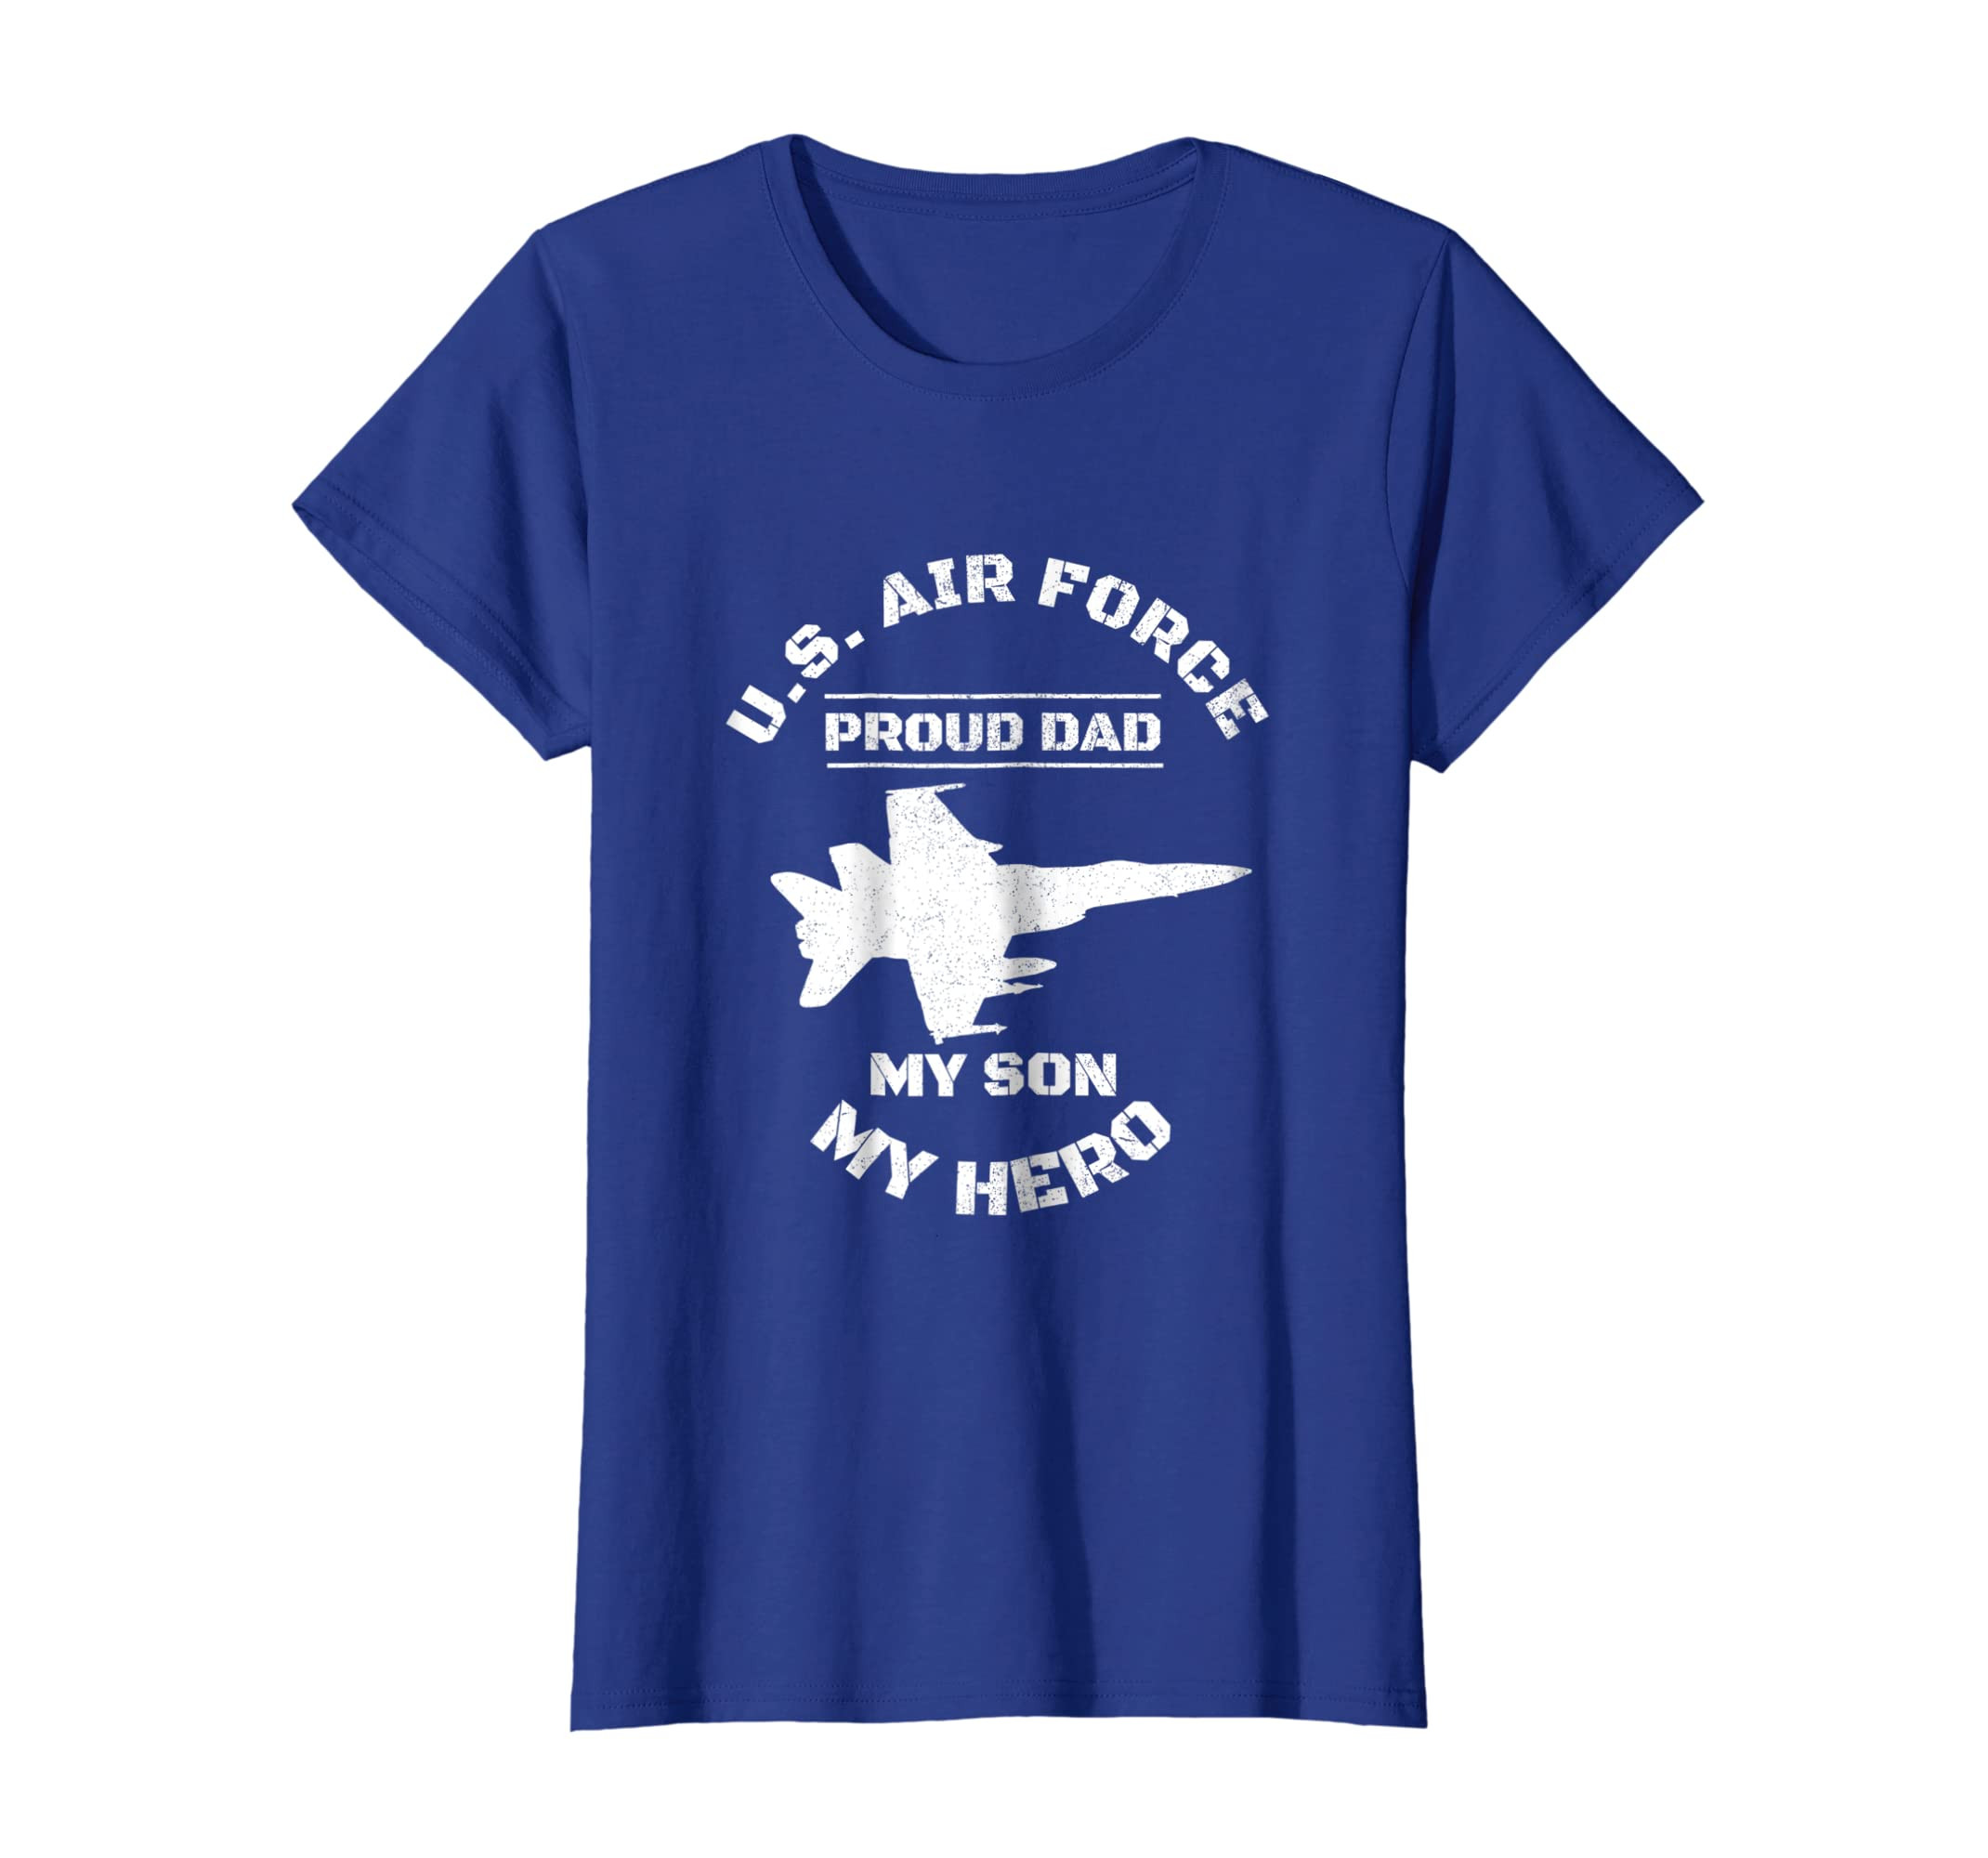 d2776d6e Amazon.com: Proud AIR FORCE Dad Tshirts Shirt MY SON MY HERO Gifts: Clothing